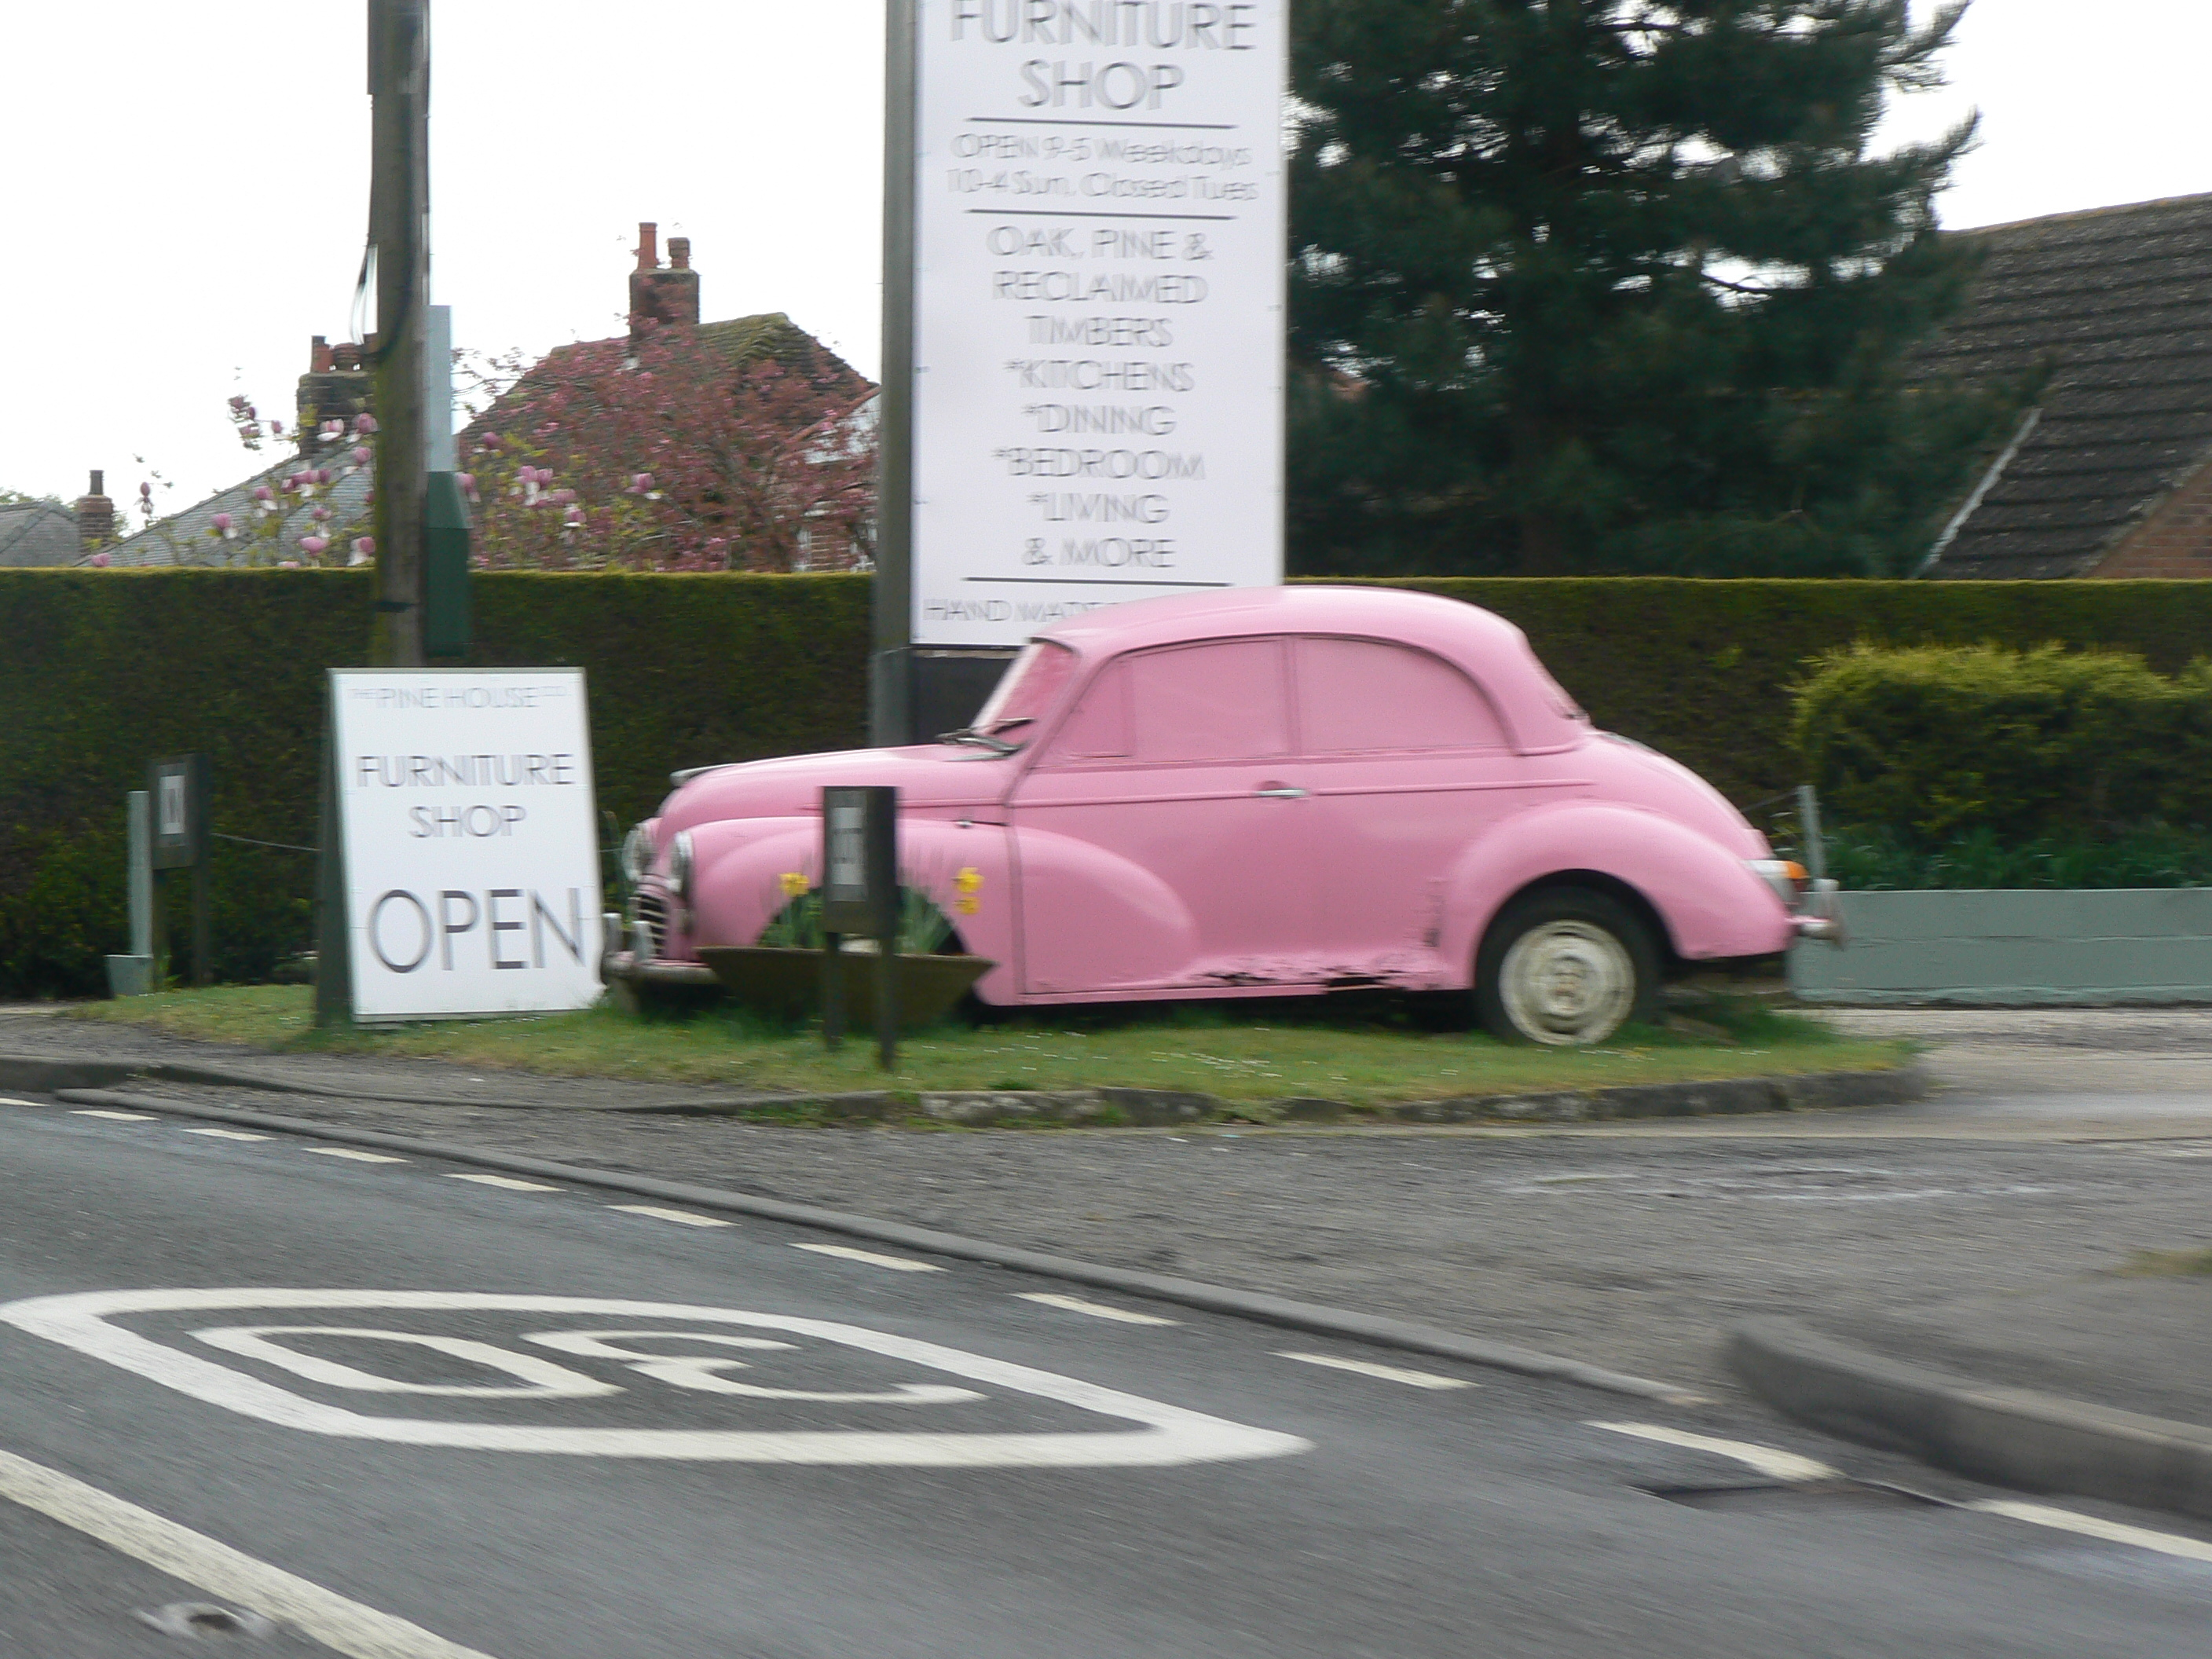 Iceni Minors Drive It Day 2015 pink Morris Minor